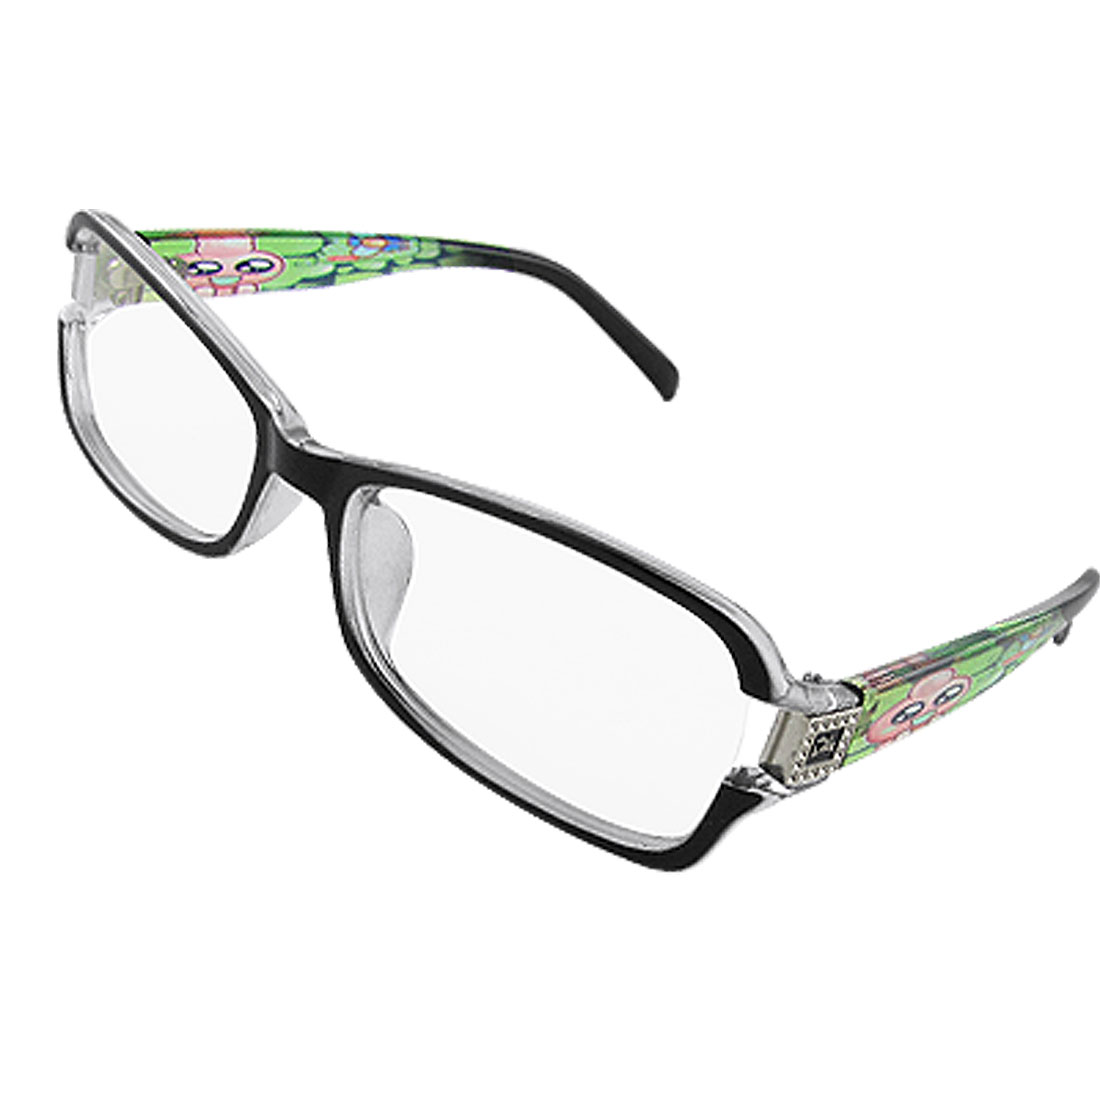 Black Full Rim Cartoon Role Printed Arms Clear Lens Glasses